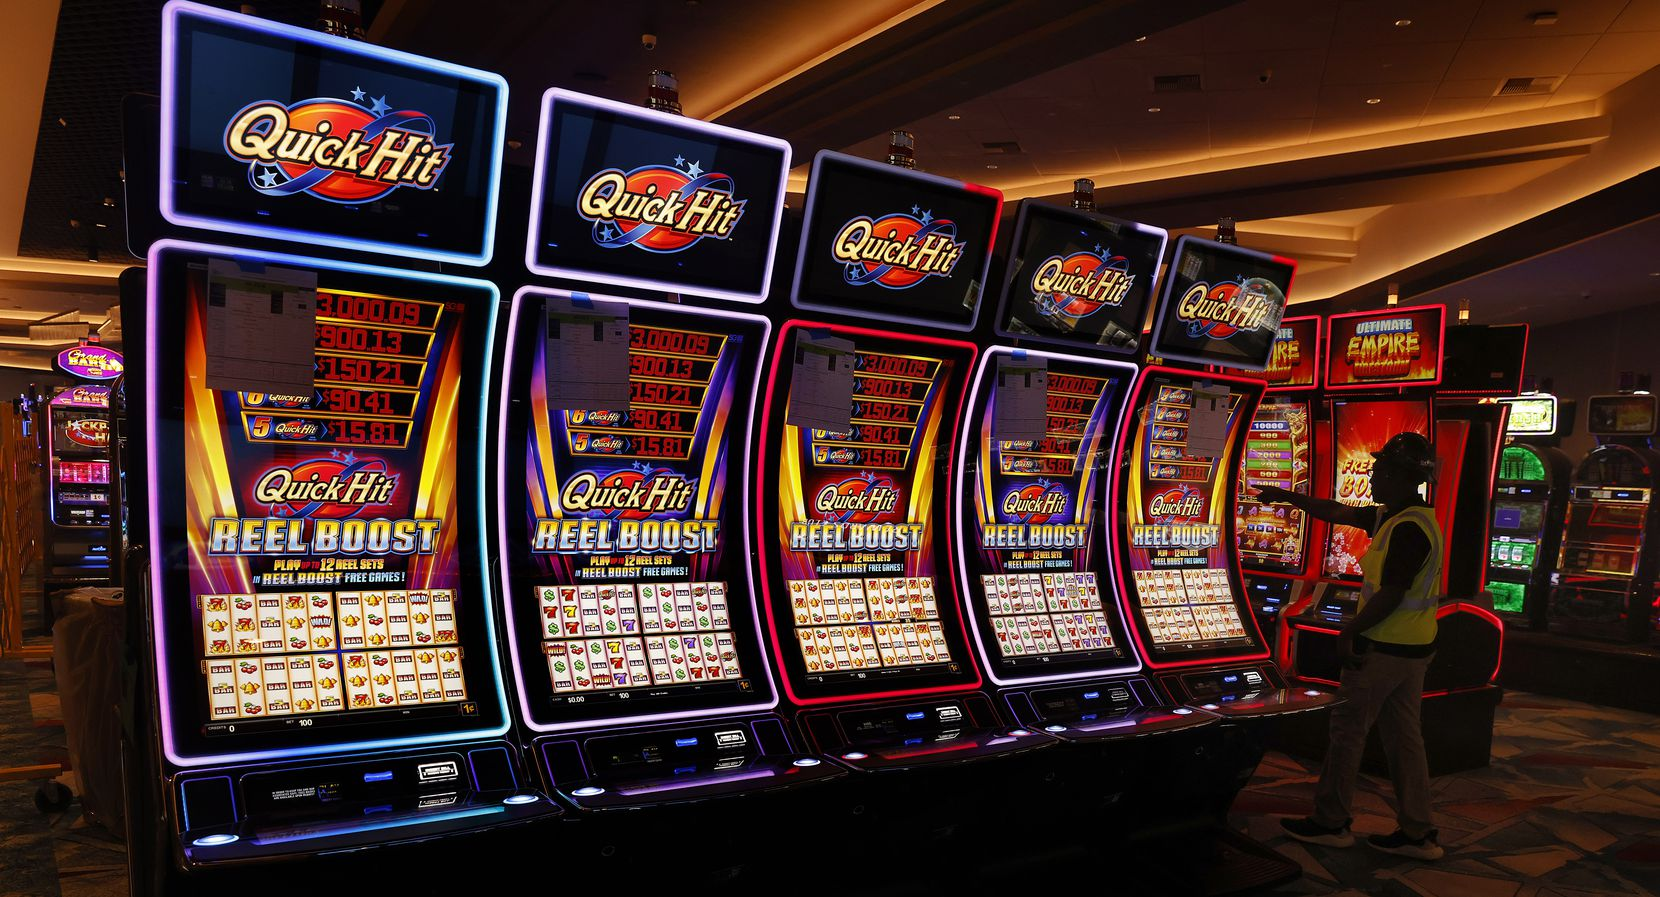 The new complex has over 3,300 slot machines.